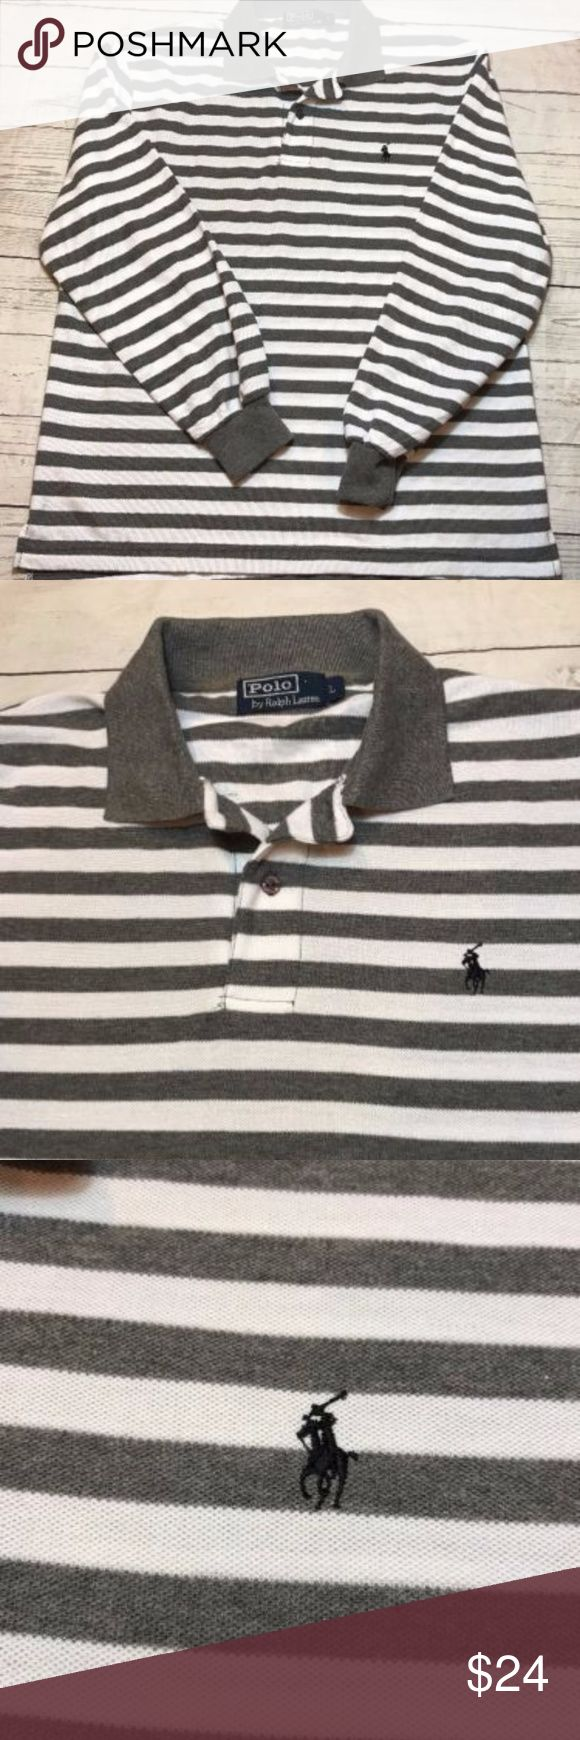 "Polo-Ralph-Lauren-Shirt-Men-Long Sleeve Polo Gray Shirt in excellent condition. Gray/white striped with black pony Logo. Men's Large.  Chest: 21""  Length: 27""  Thanks for looking!  A Polo by Ralph Lauren Shirts Polos"